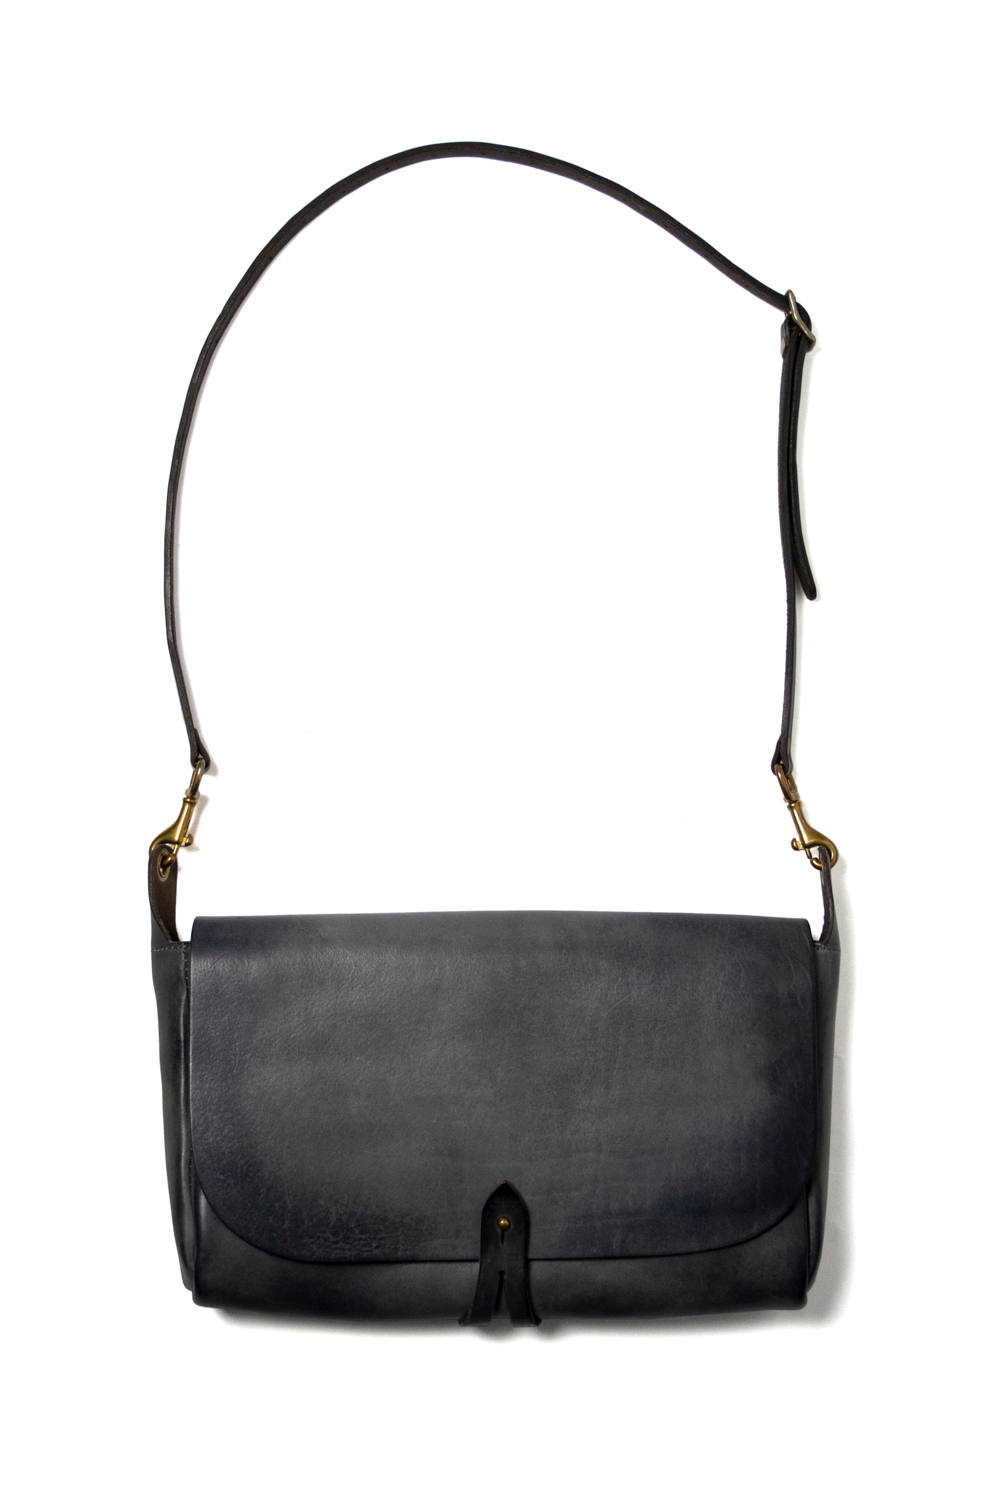 【18AW】レザー3WAYクラッチバッグ [グレー] / LEATHER 3WAY CLUTCH BAG [GRAY]